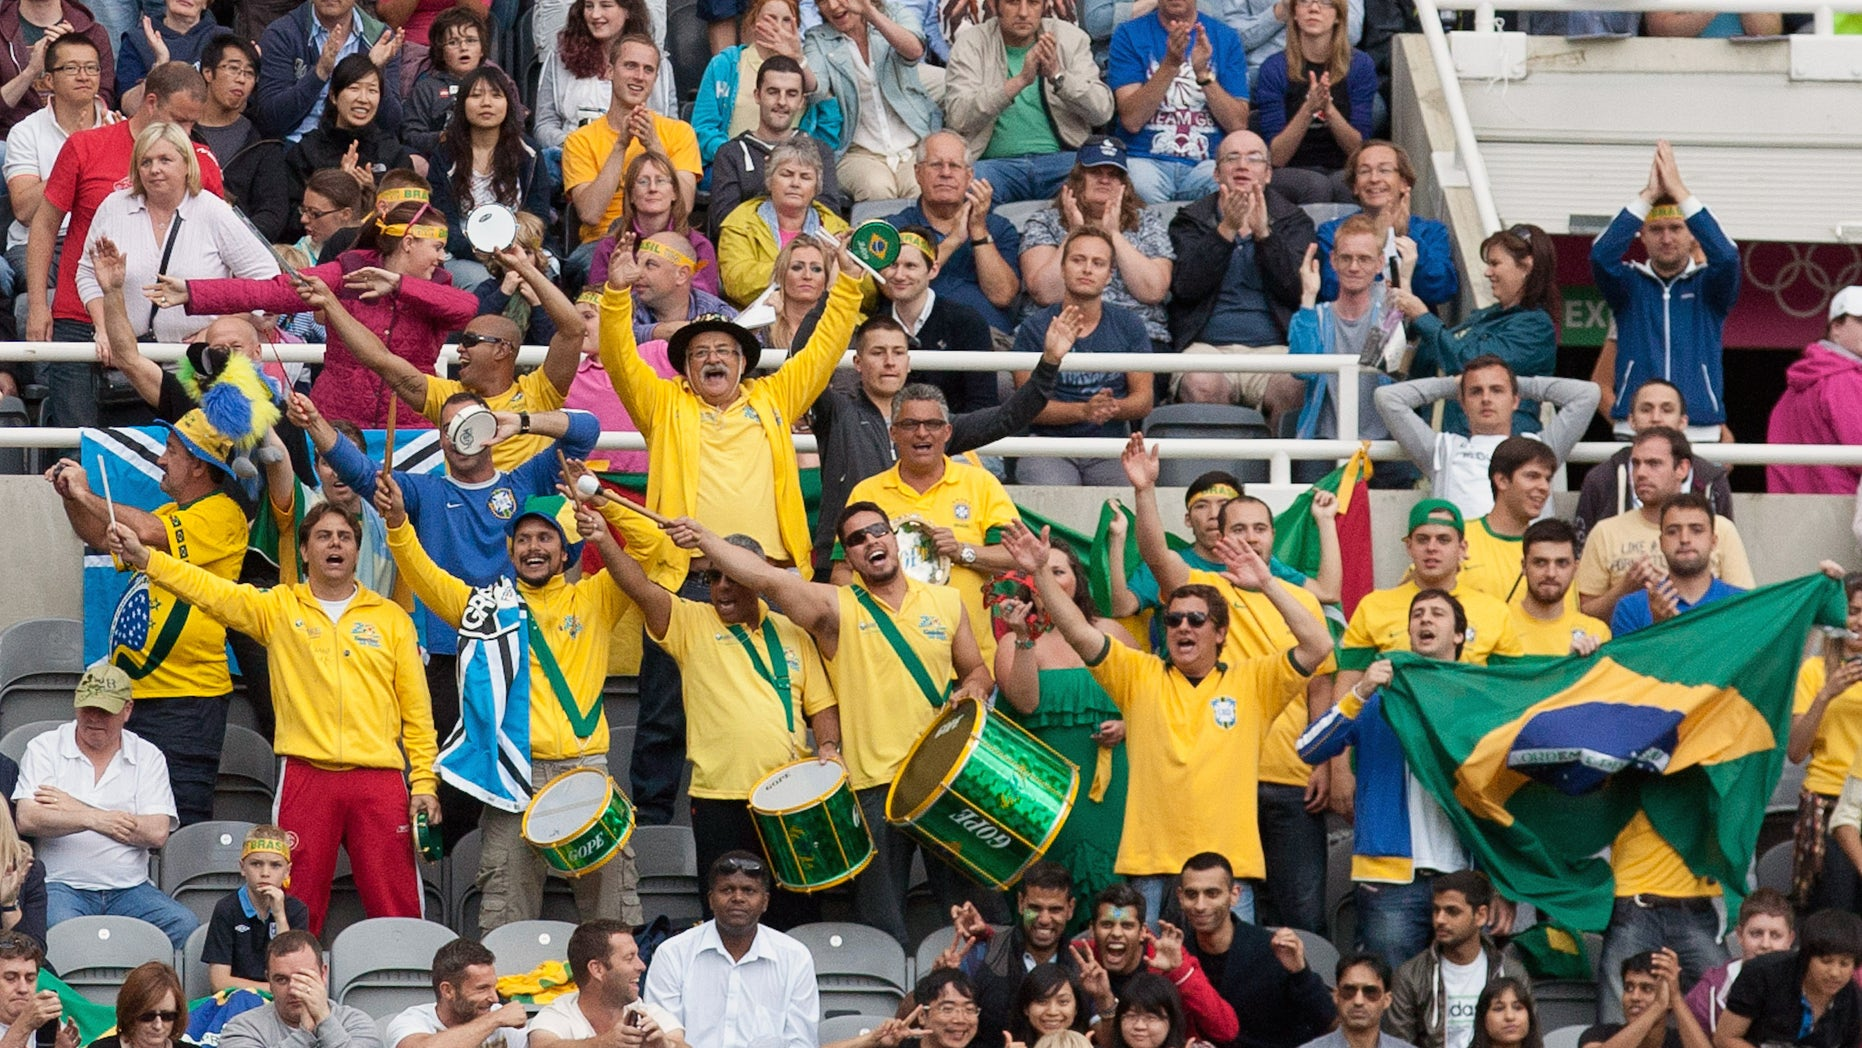 Brazil fans celebrate during a quarterfinal men's soccer match against Honduras at the London 2012 Summer Olympics, Saturday, Aug. 4, 2012, at St James Park in Newcastle, England. (AP Photo/Chris Clark)